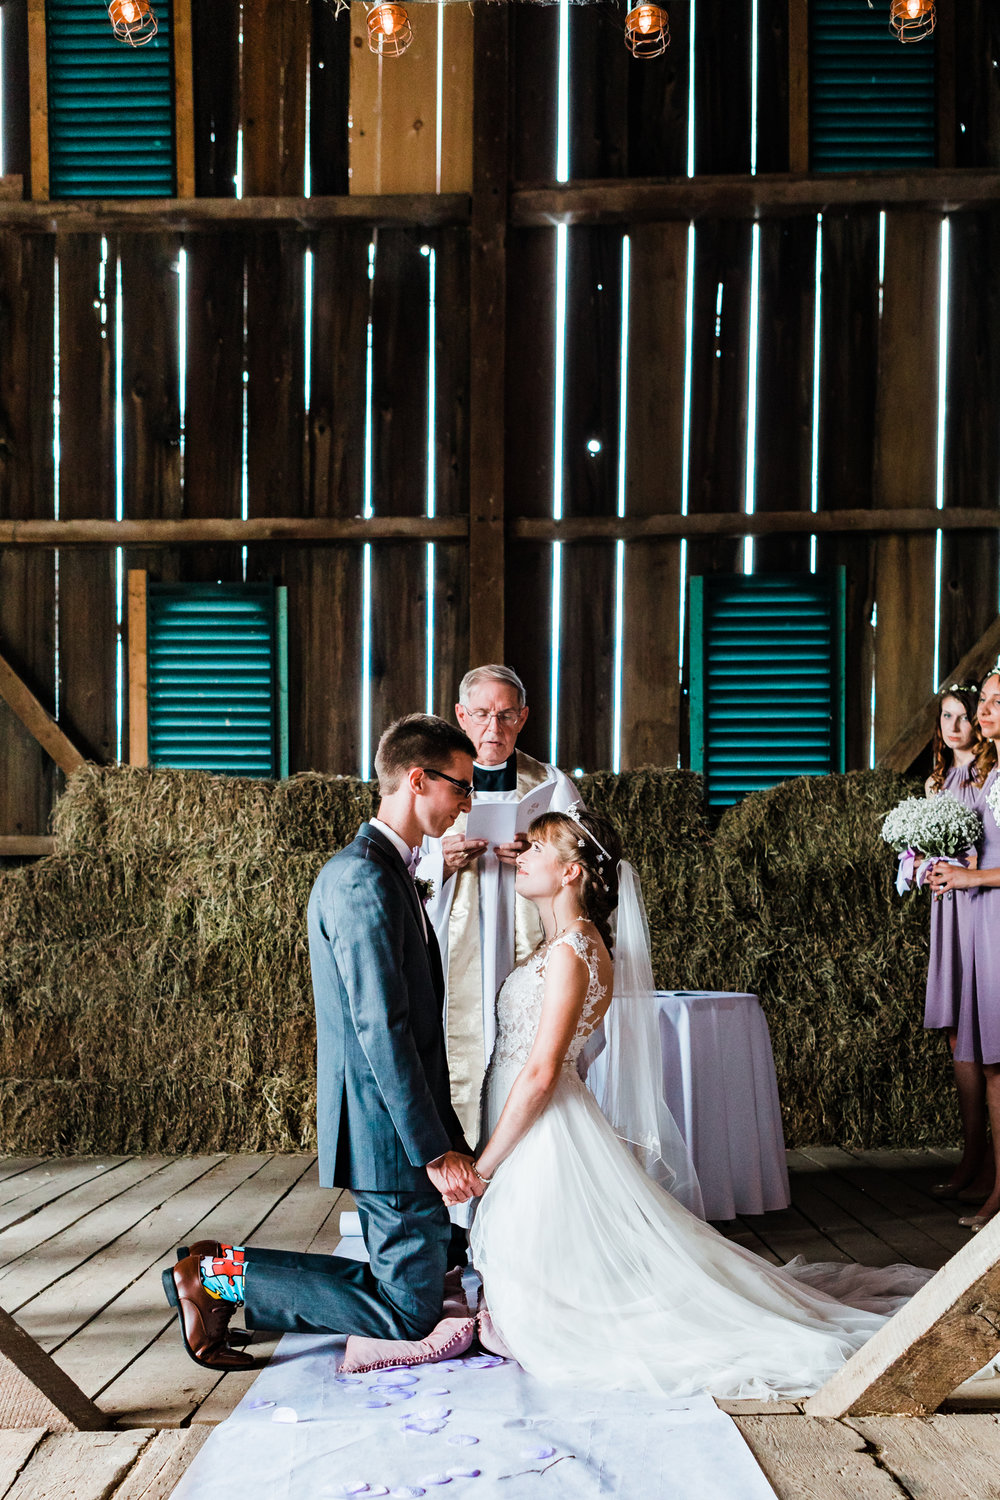 non traditional wedding ceremony ideas - maryland wedding - barn venues in maryland